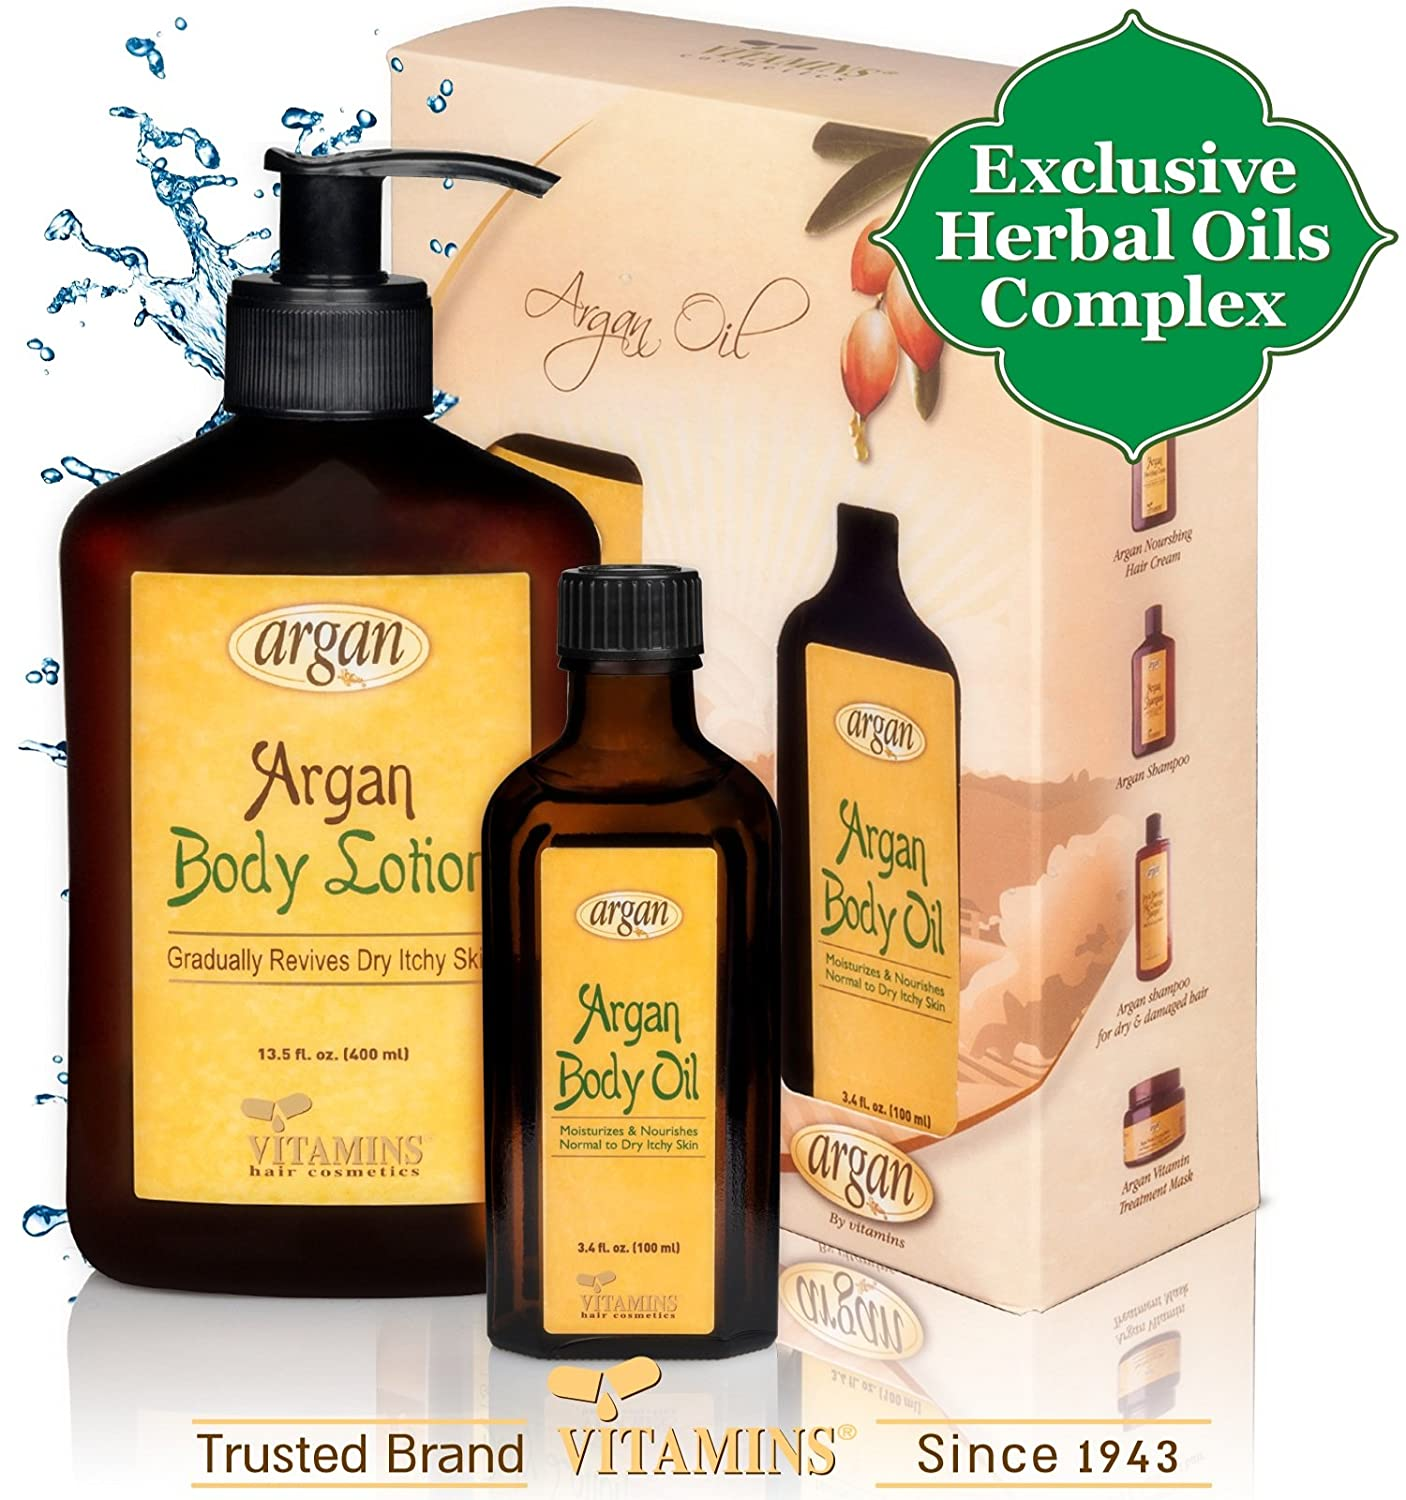 Body Lotion and Oil for Dry Skin Argan Oil Skin Care Treatment Kit – Natural Renew Moroccan Argan Body Cream + Serum ★ The Ultimate Daily Sensitive SkinCare Gel Creme Moisturizer & Skin Oil Leave in Therapy to Revive, Repair and Calm Dryness & Cracked Irritated Skin ★ Vitamins Premium Luxury Argan Gold Series Skin Products for Women & Men ★ Alcohol Free, Salt Free ★ SUPER VALUE ON SALE Combo Set Deal ★ 2 PRODUCTS in the PRICE of 1 in a Decorated Gift Box (13.56 oz / 400 ml) + (3.4 oz / 100 ml) ★ GUARANTEED to Make Your Skin Look & Feel Much Better Or 100% of Your Money Back!